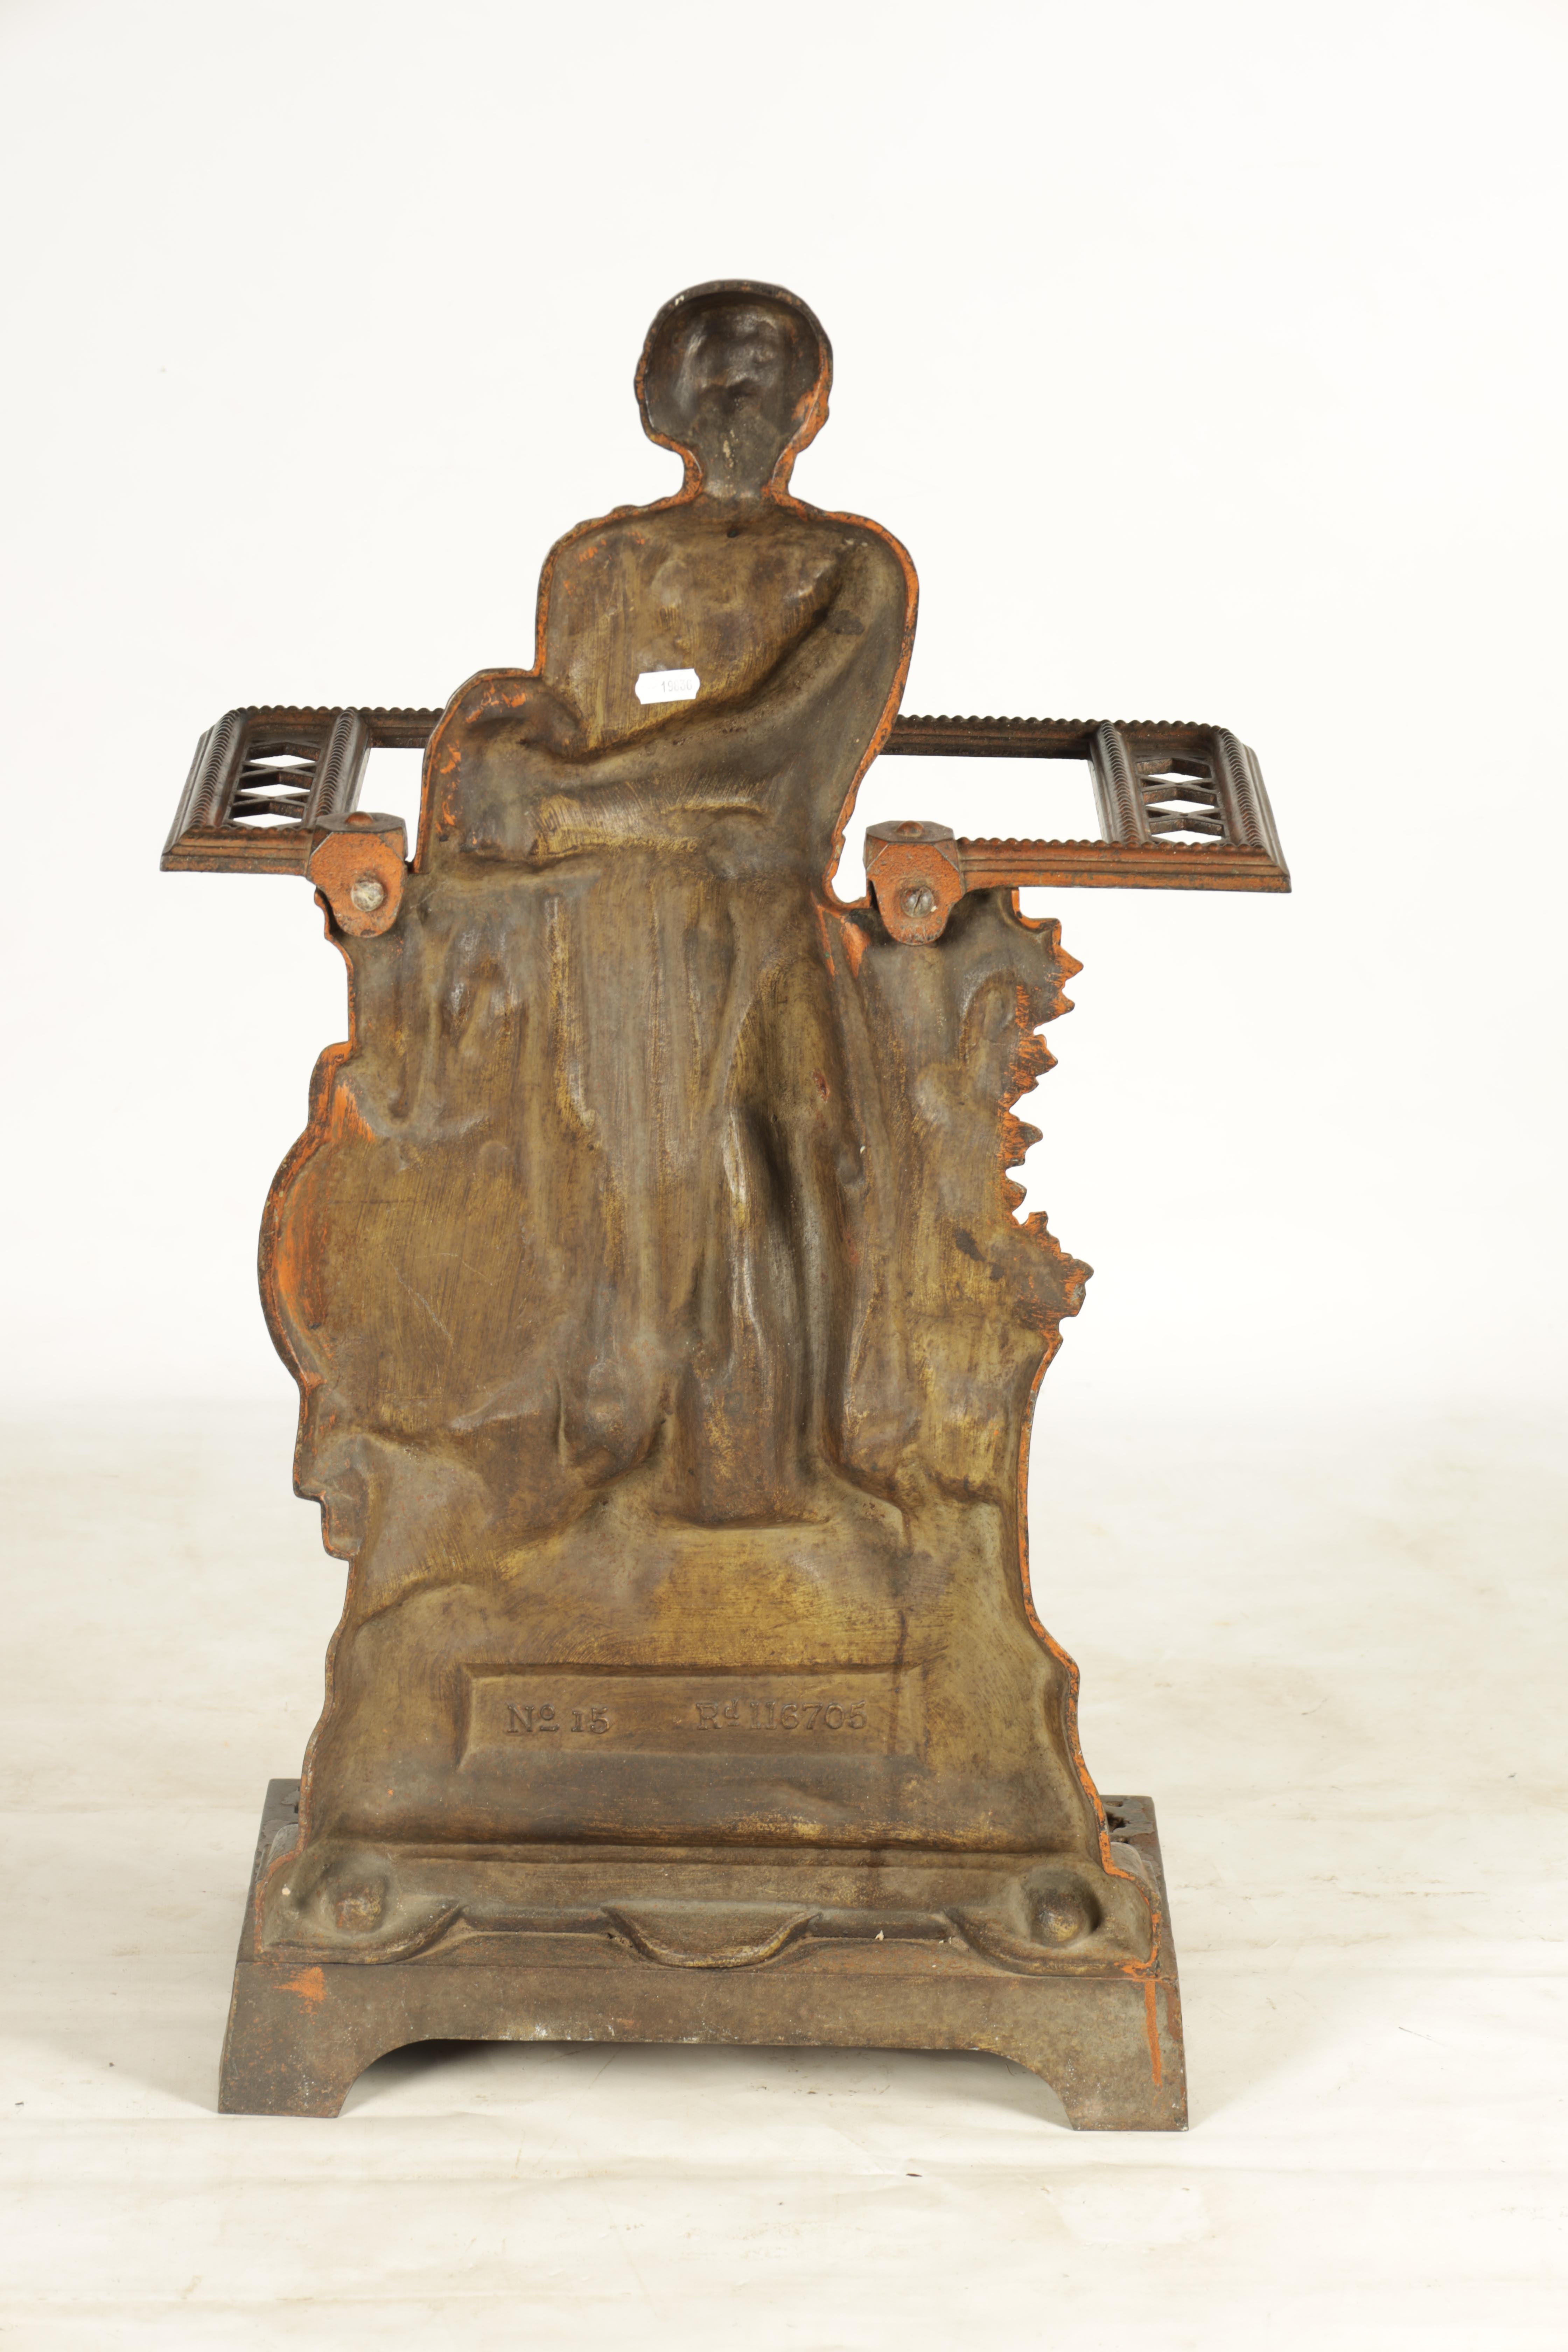 A LATE 19TH CENTURY PAINTED CAST IRON COALBROOKEDALE STYLE STICK STAND DEPICTING WILLIAM WALLACE - Image 5 of 5